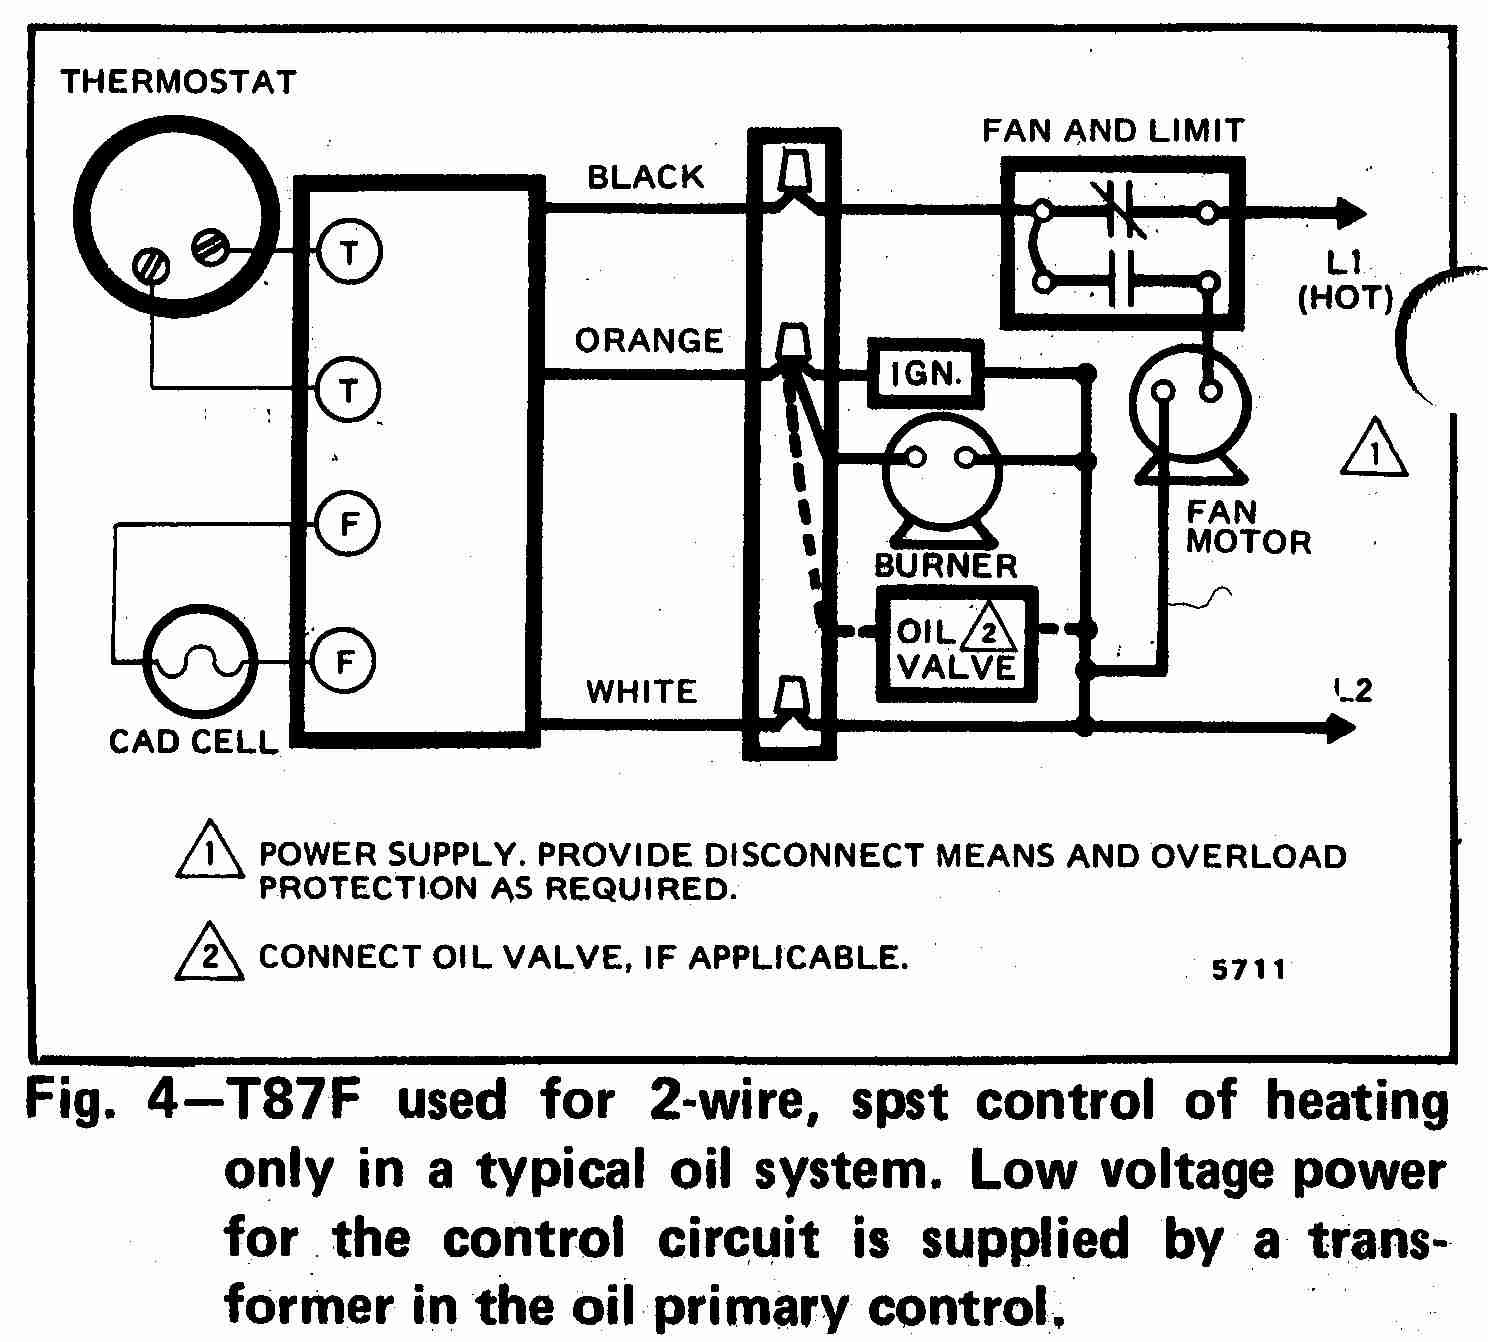 Hvac Control Panel Wiring Diagram Free New Room Thermostat Diagrams For